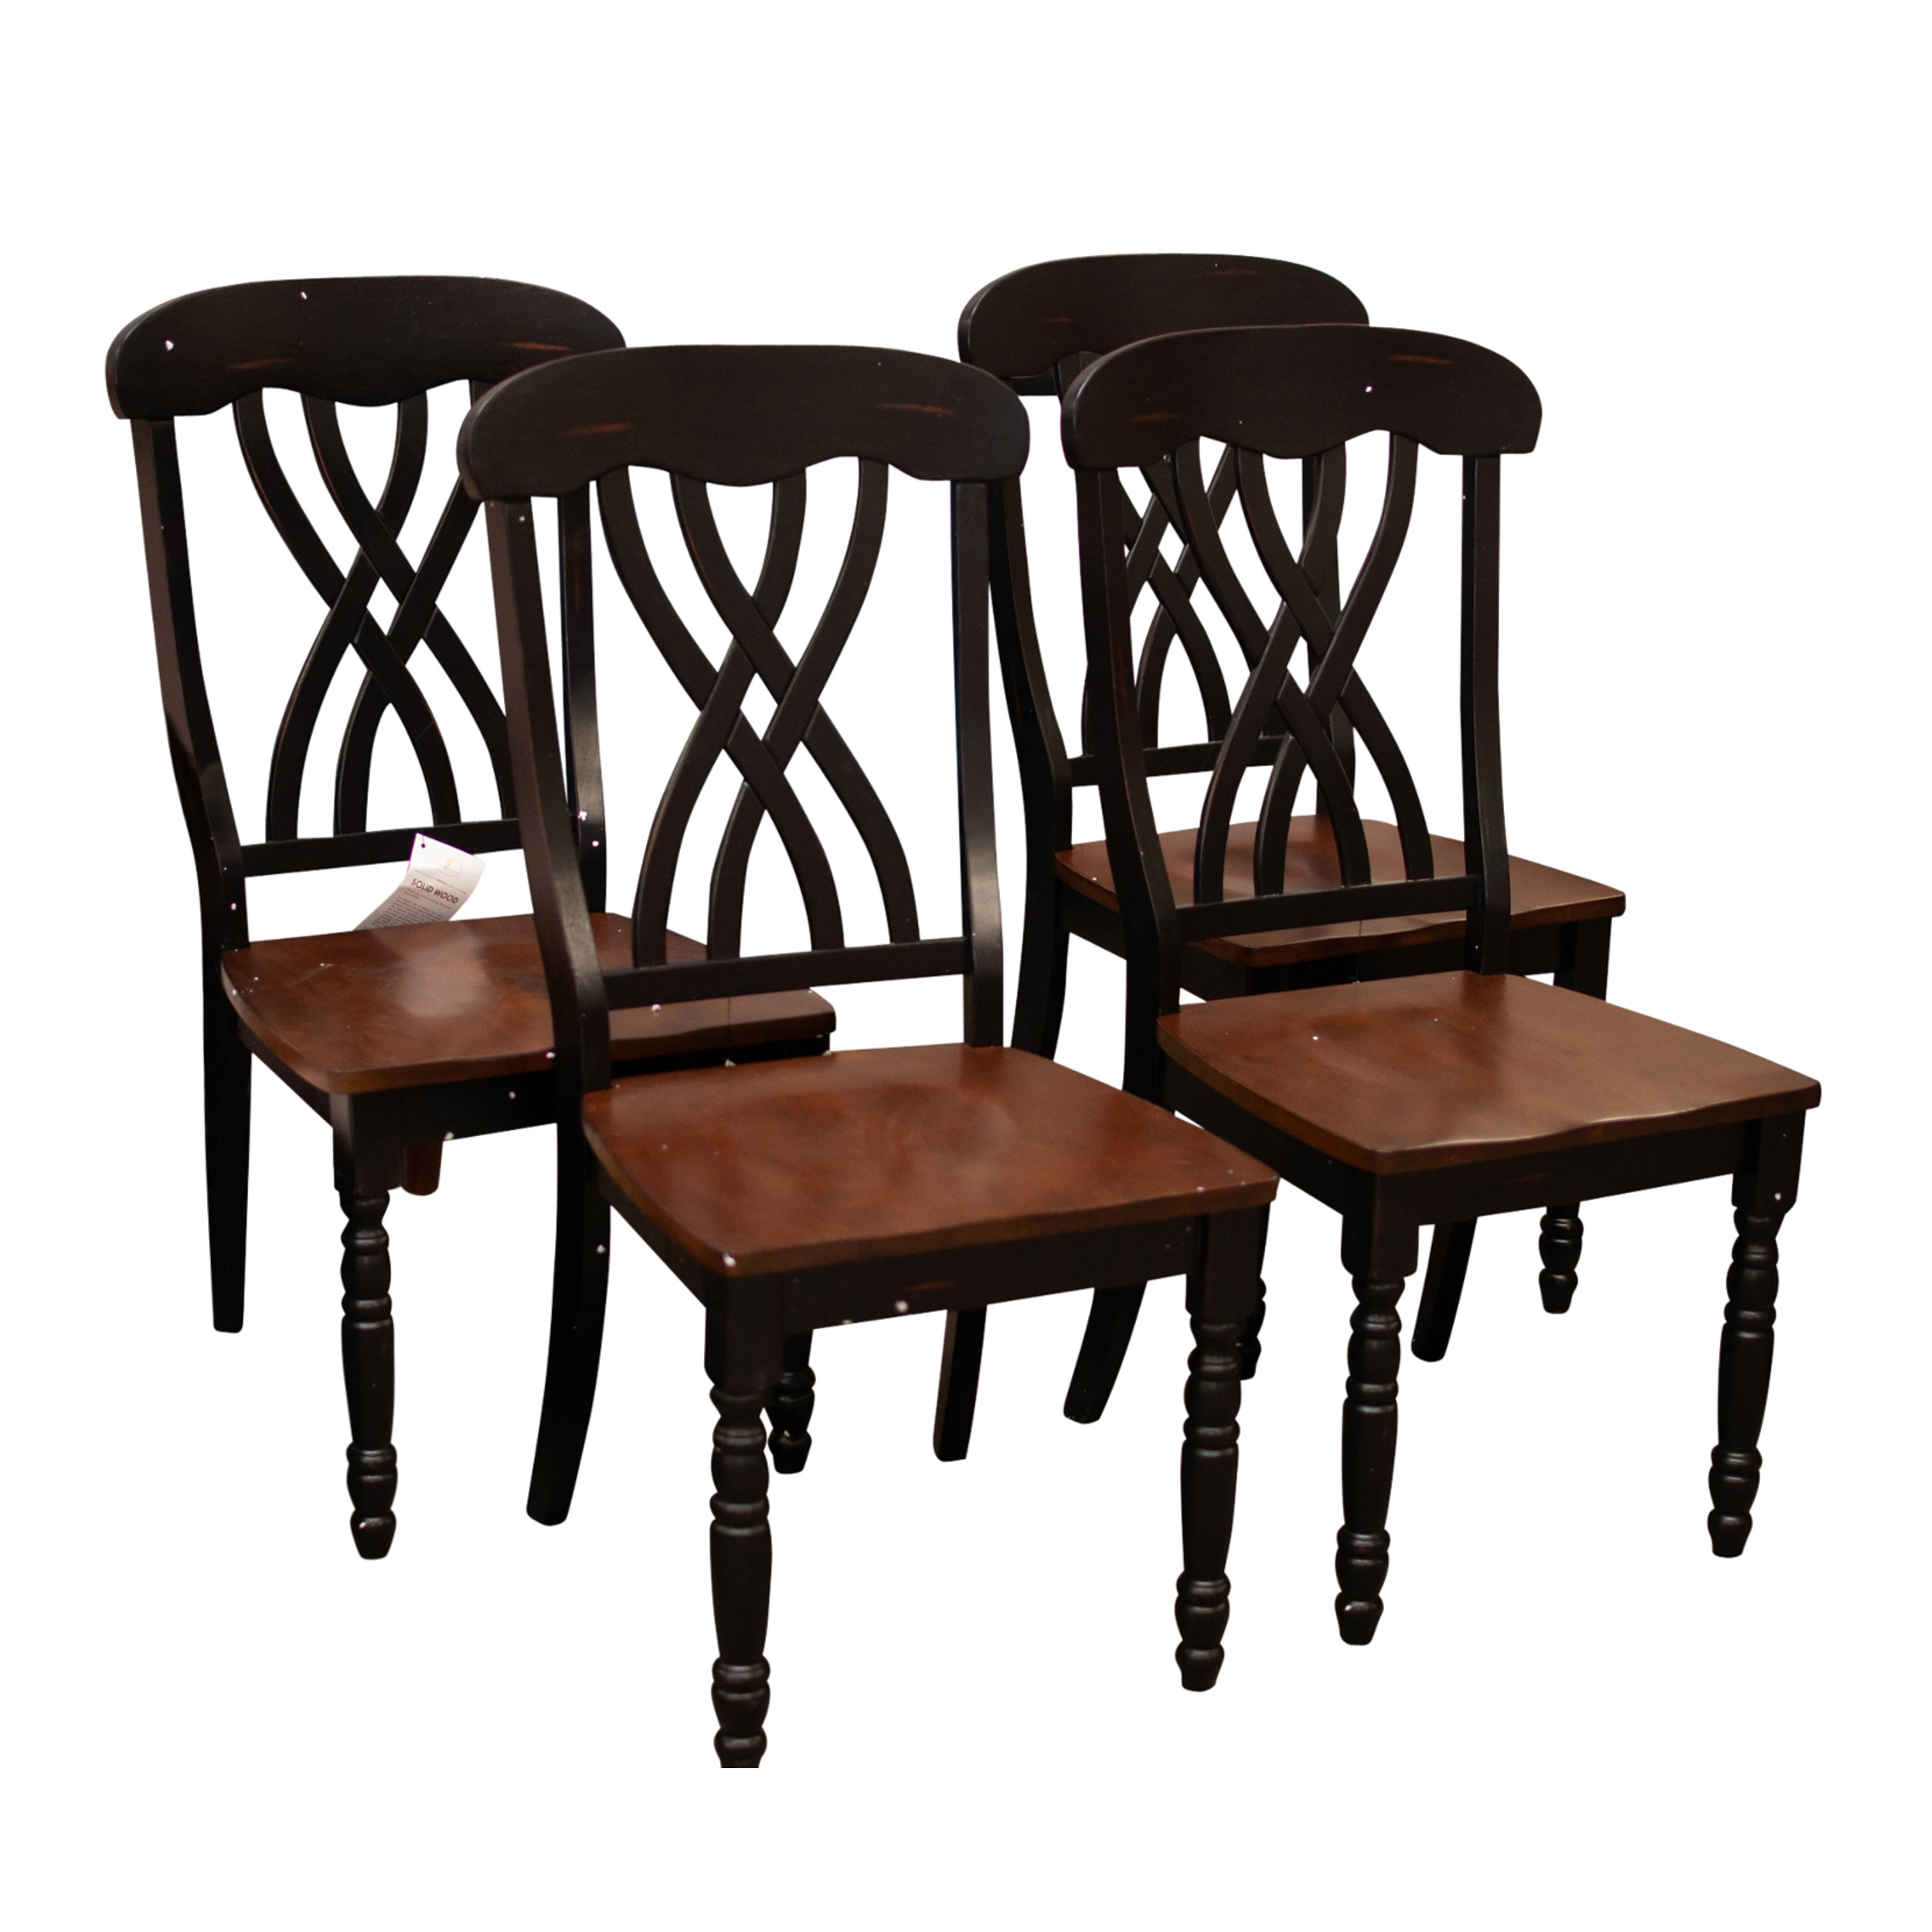 Home Elegance Solid Wood Dining Chairs, Contemporary